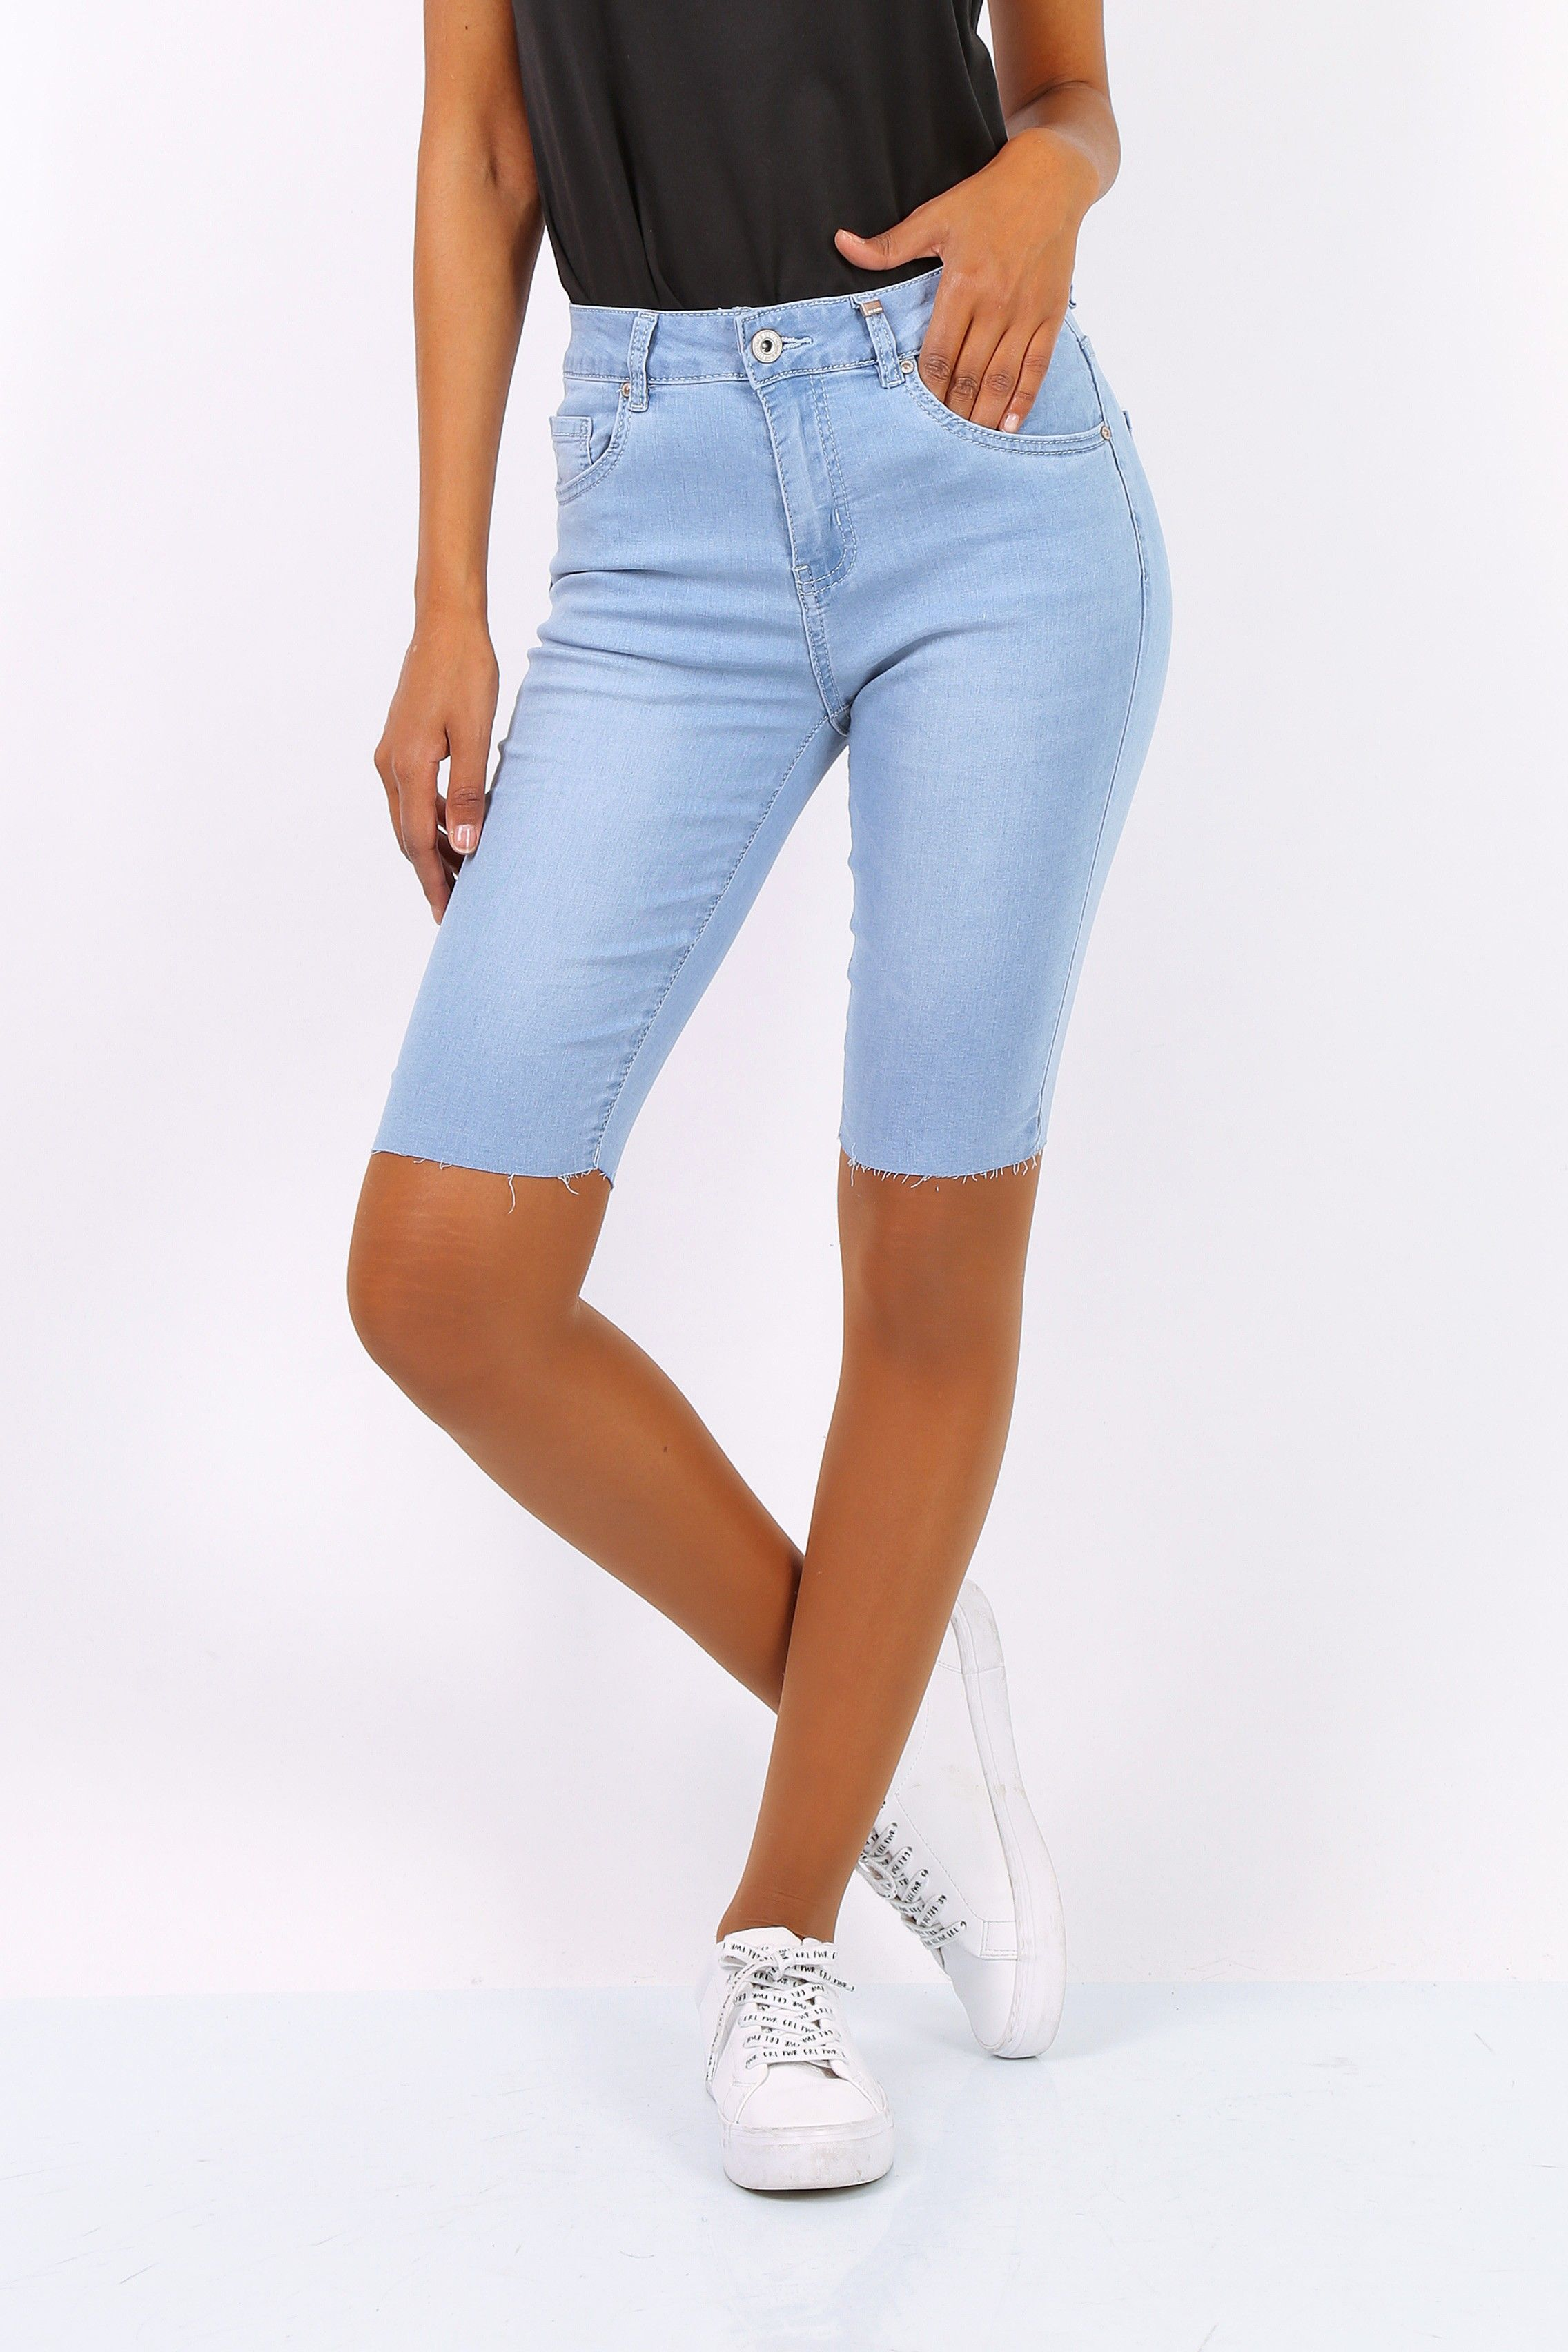 Toxik 3 Jean Shorts | Light Blue H2435 Mid Rise with Raw Hem UK6